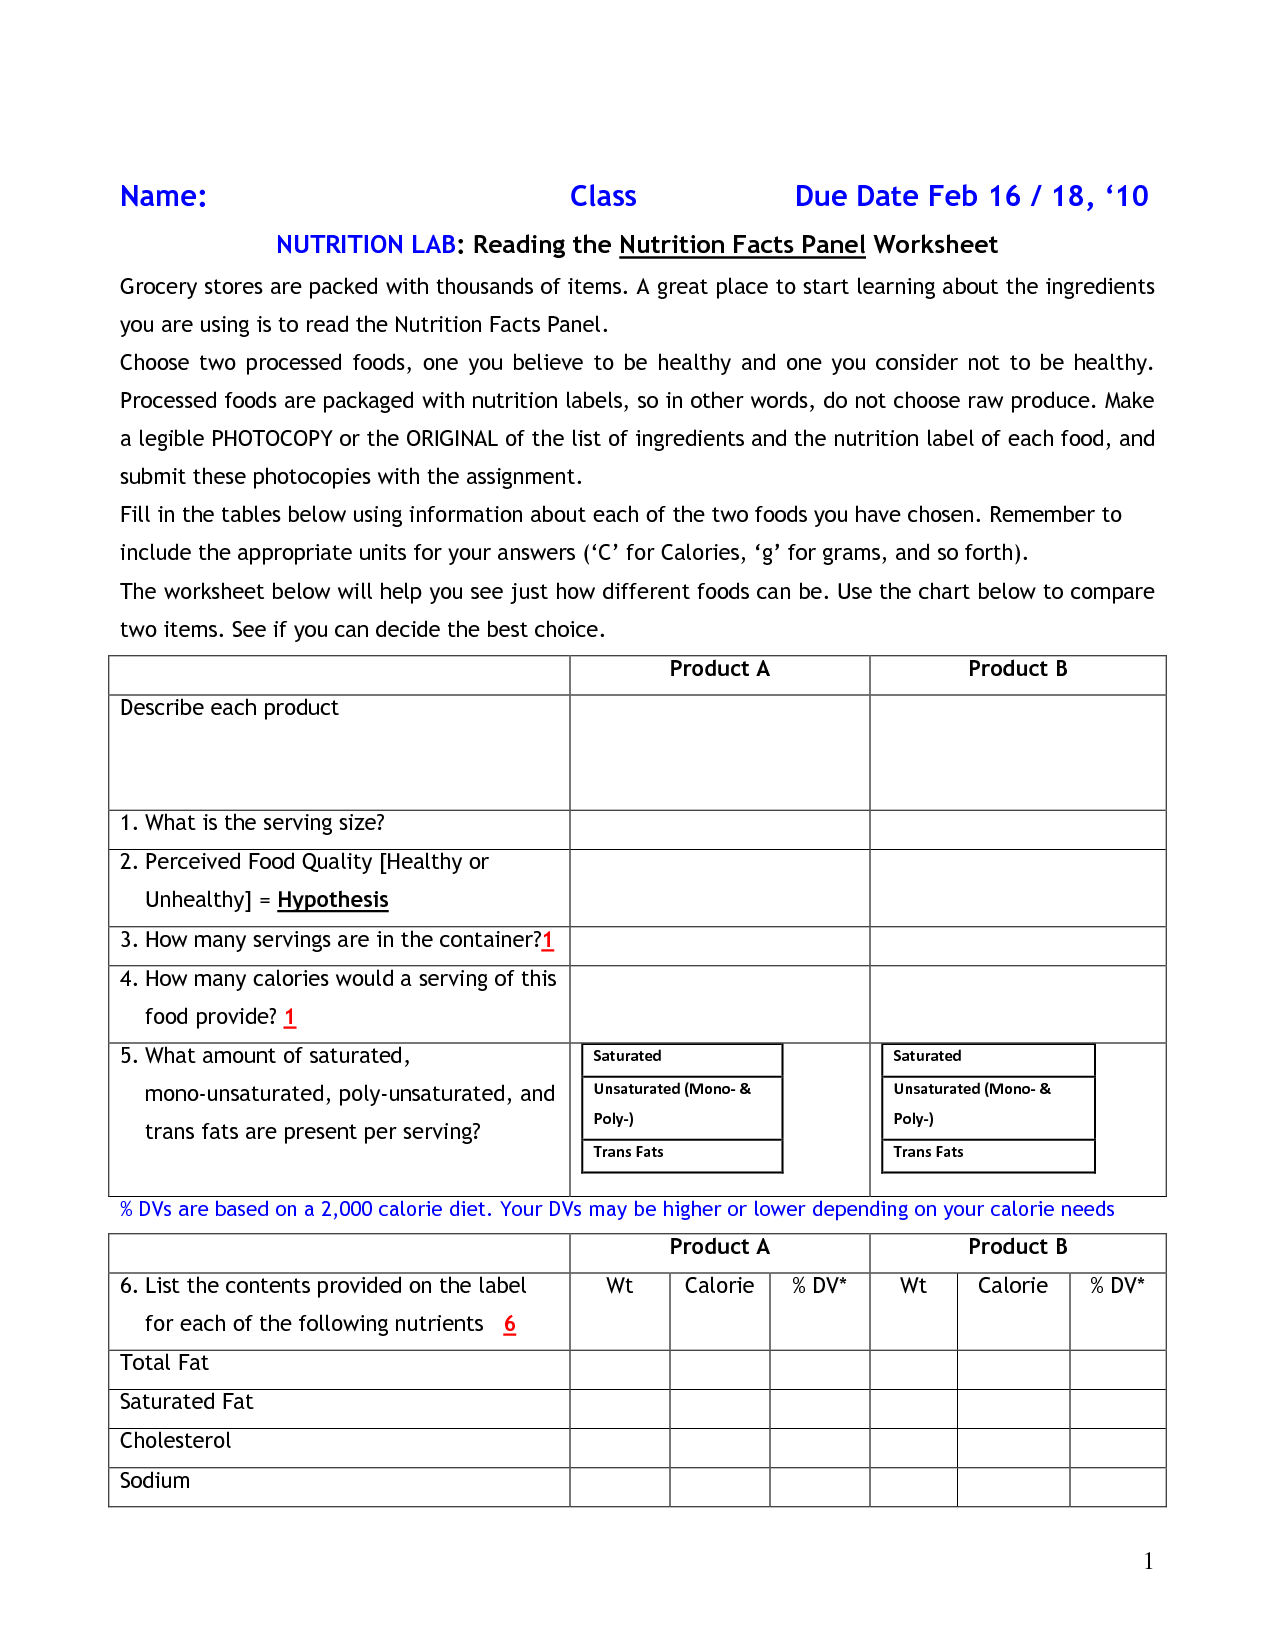 Vitamin Food Label Worksheet